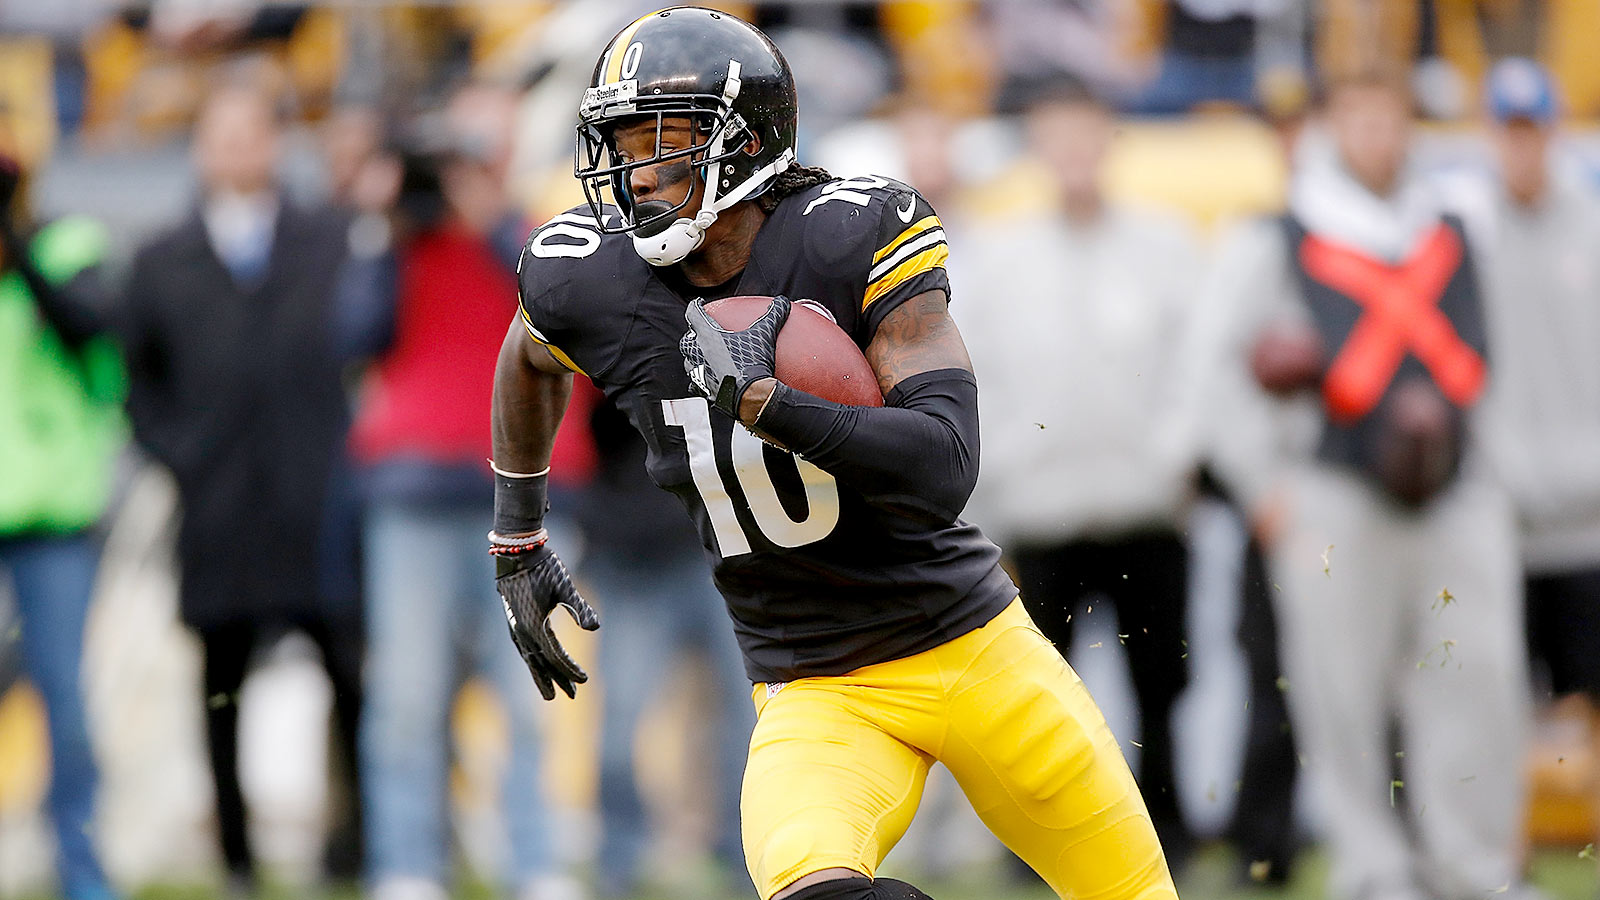 Steelers' Bryant shines in return from injury, suspension